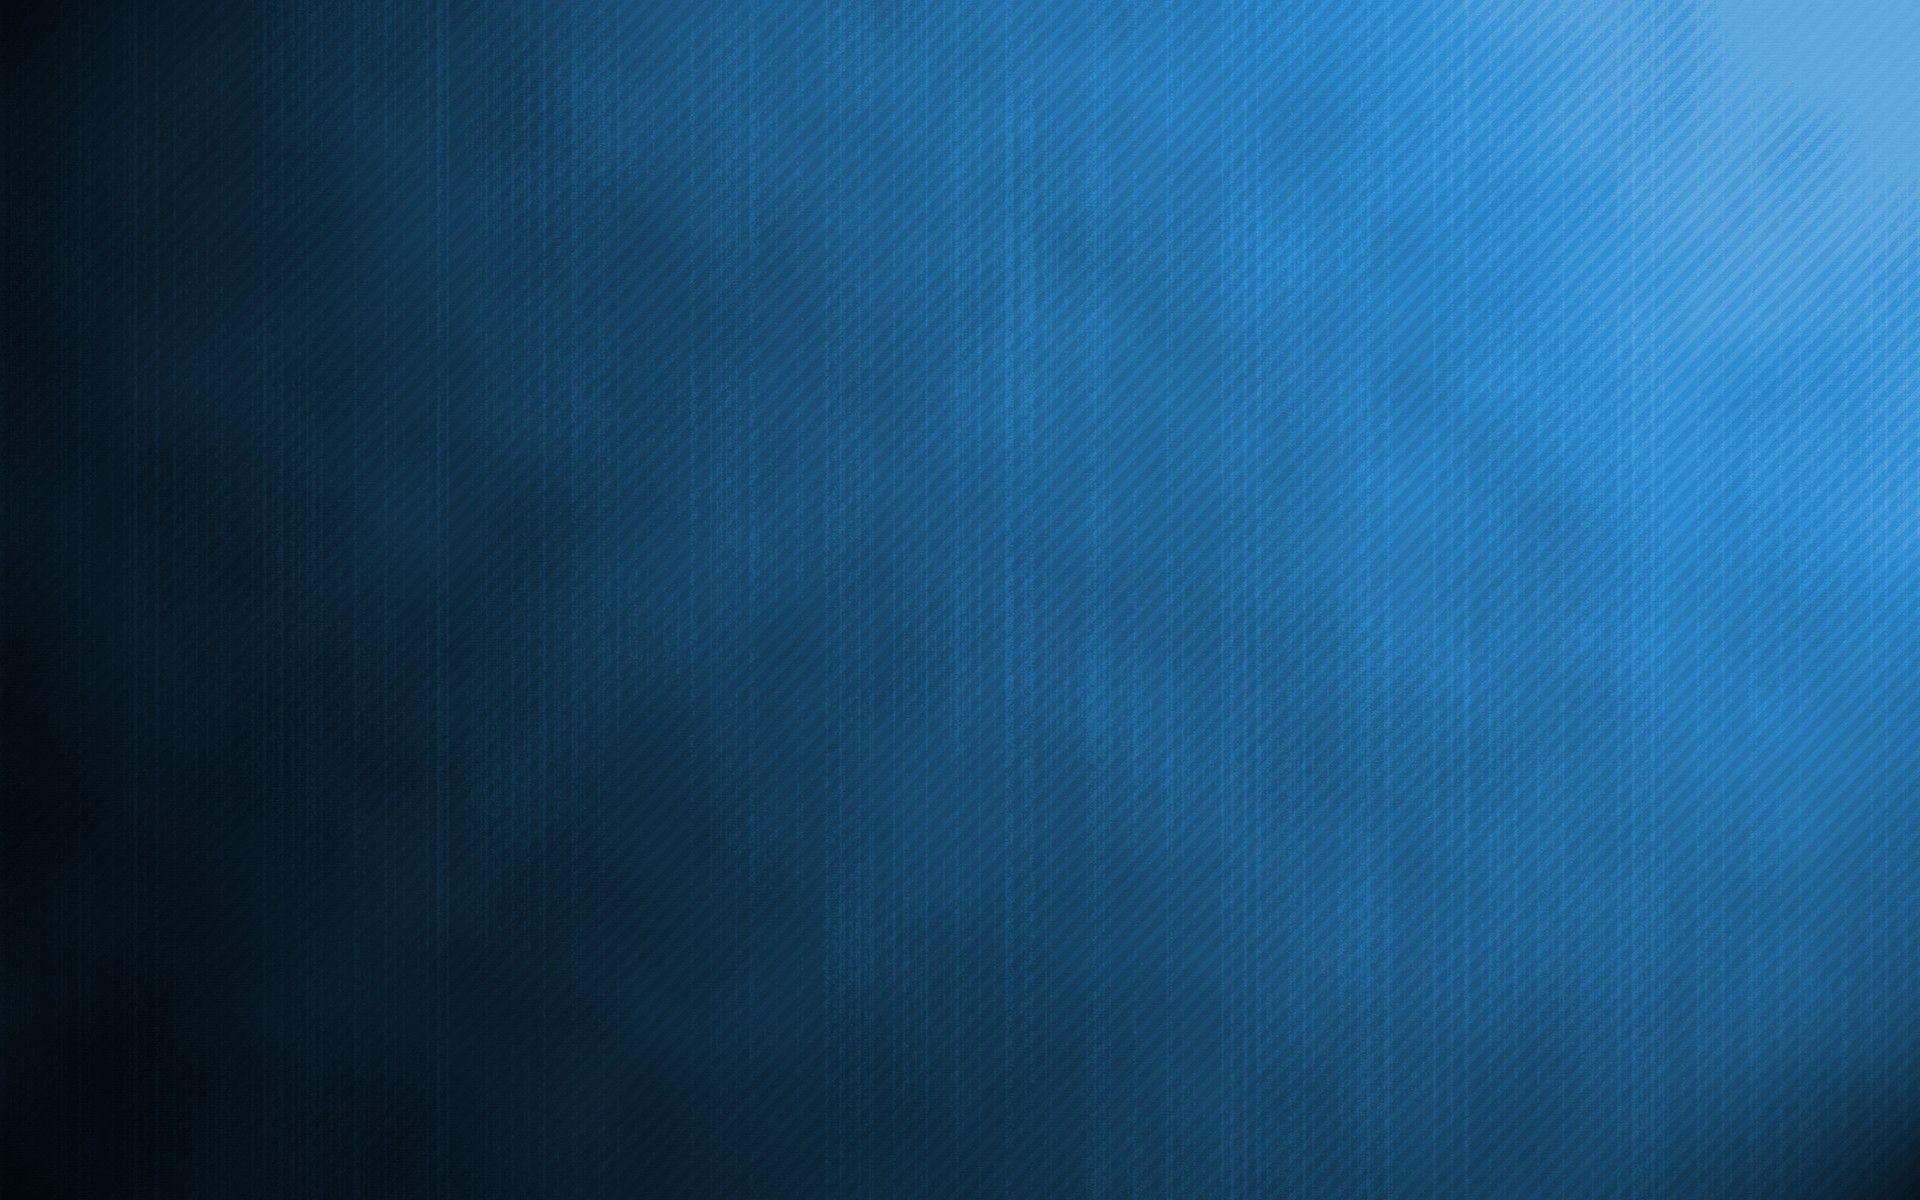 Blue Backgrounds 40